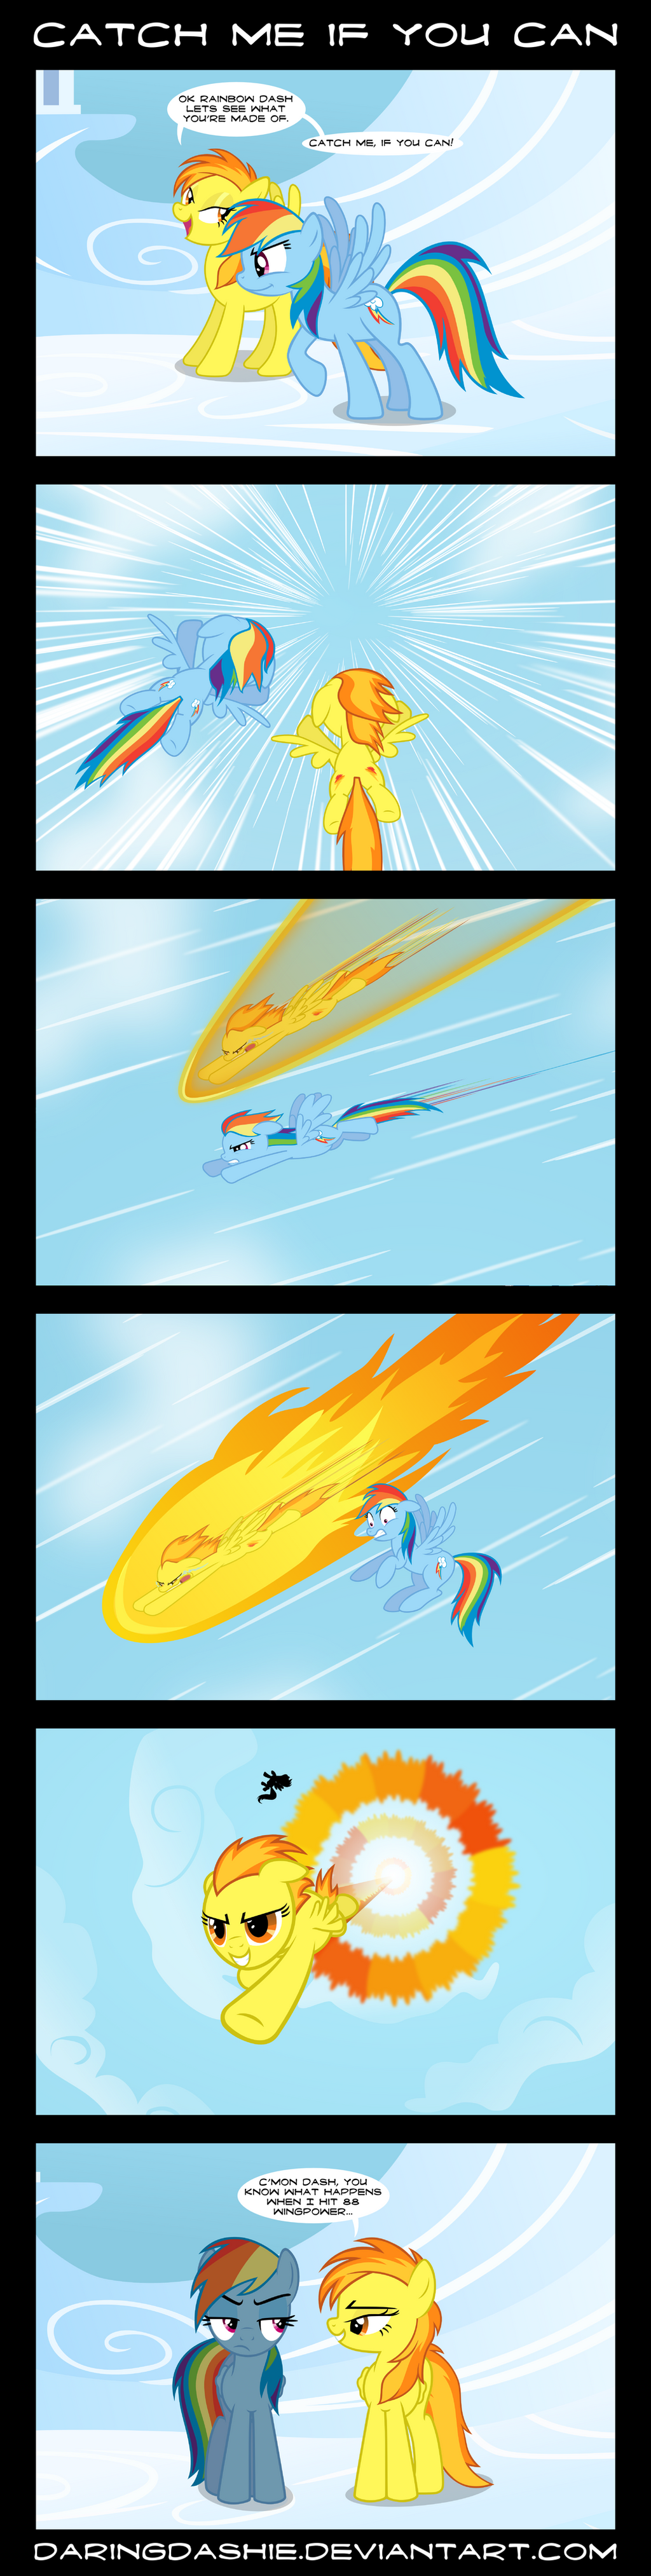 Catch Me If You Can by DaringDashie